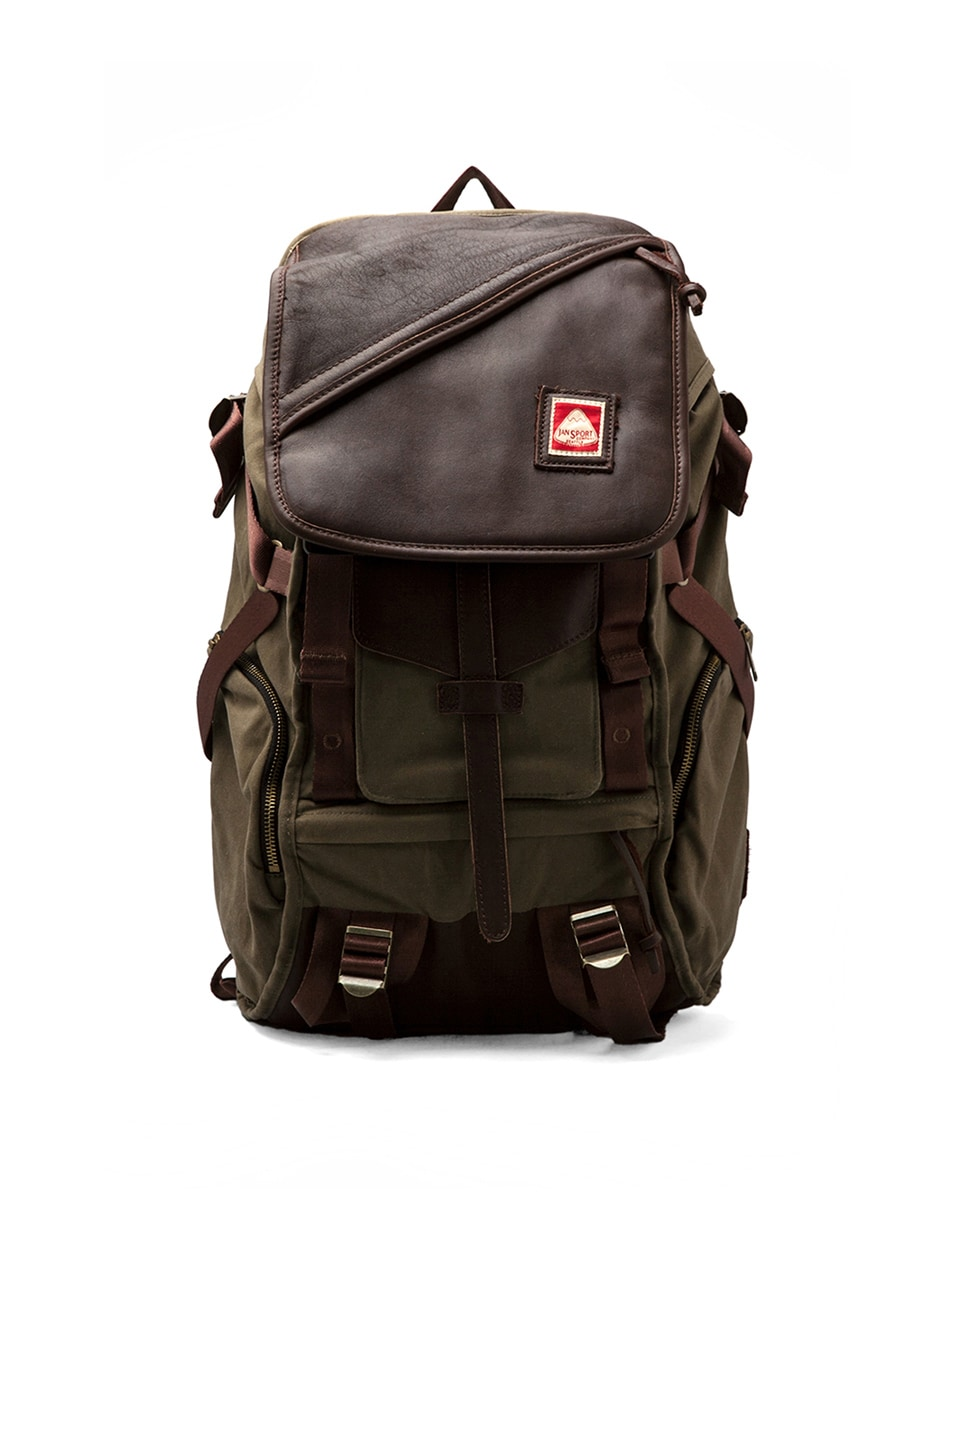 Jansport Skip Yowell Collection Pleasanton Backpack in Green Machine